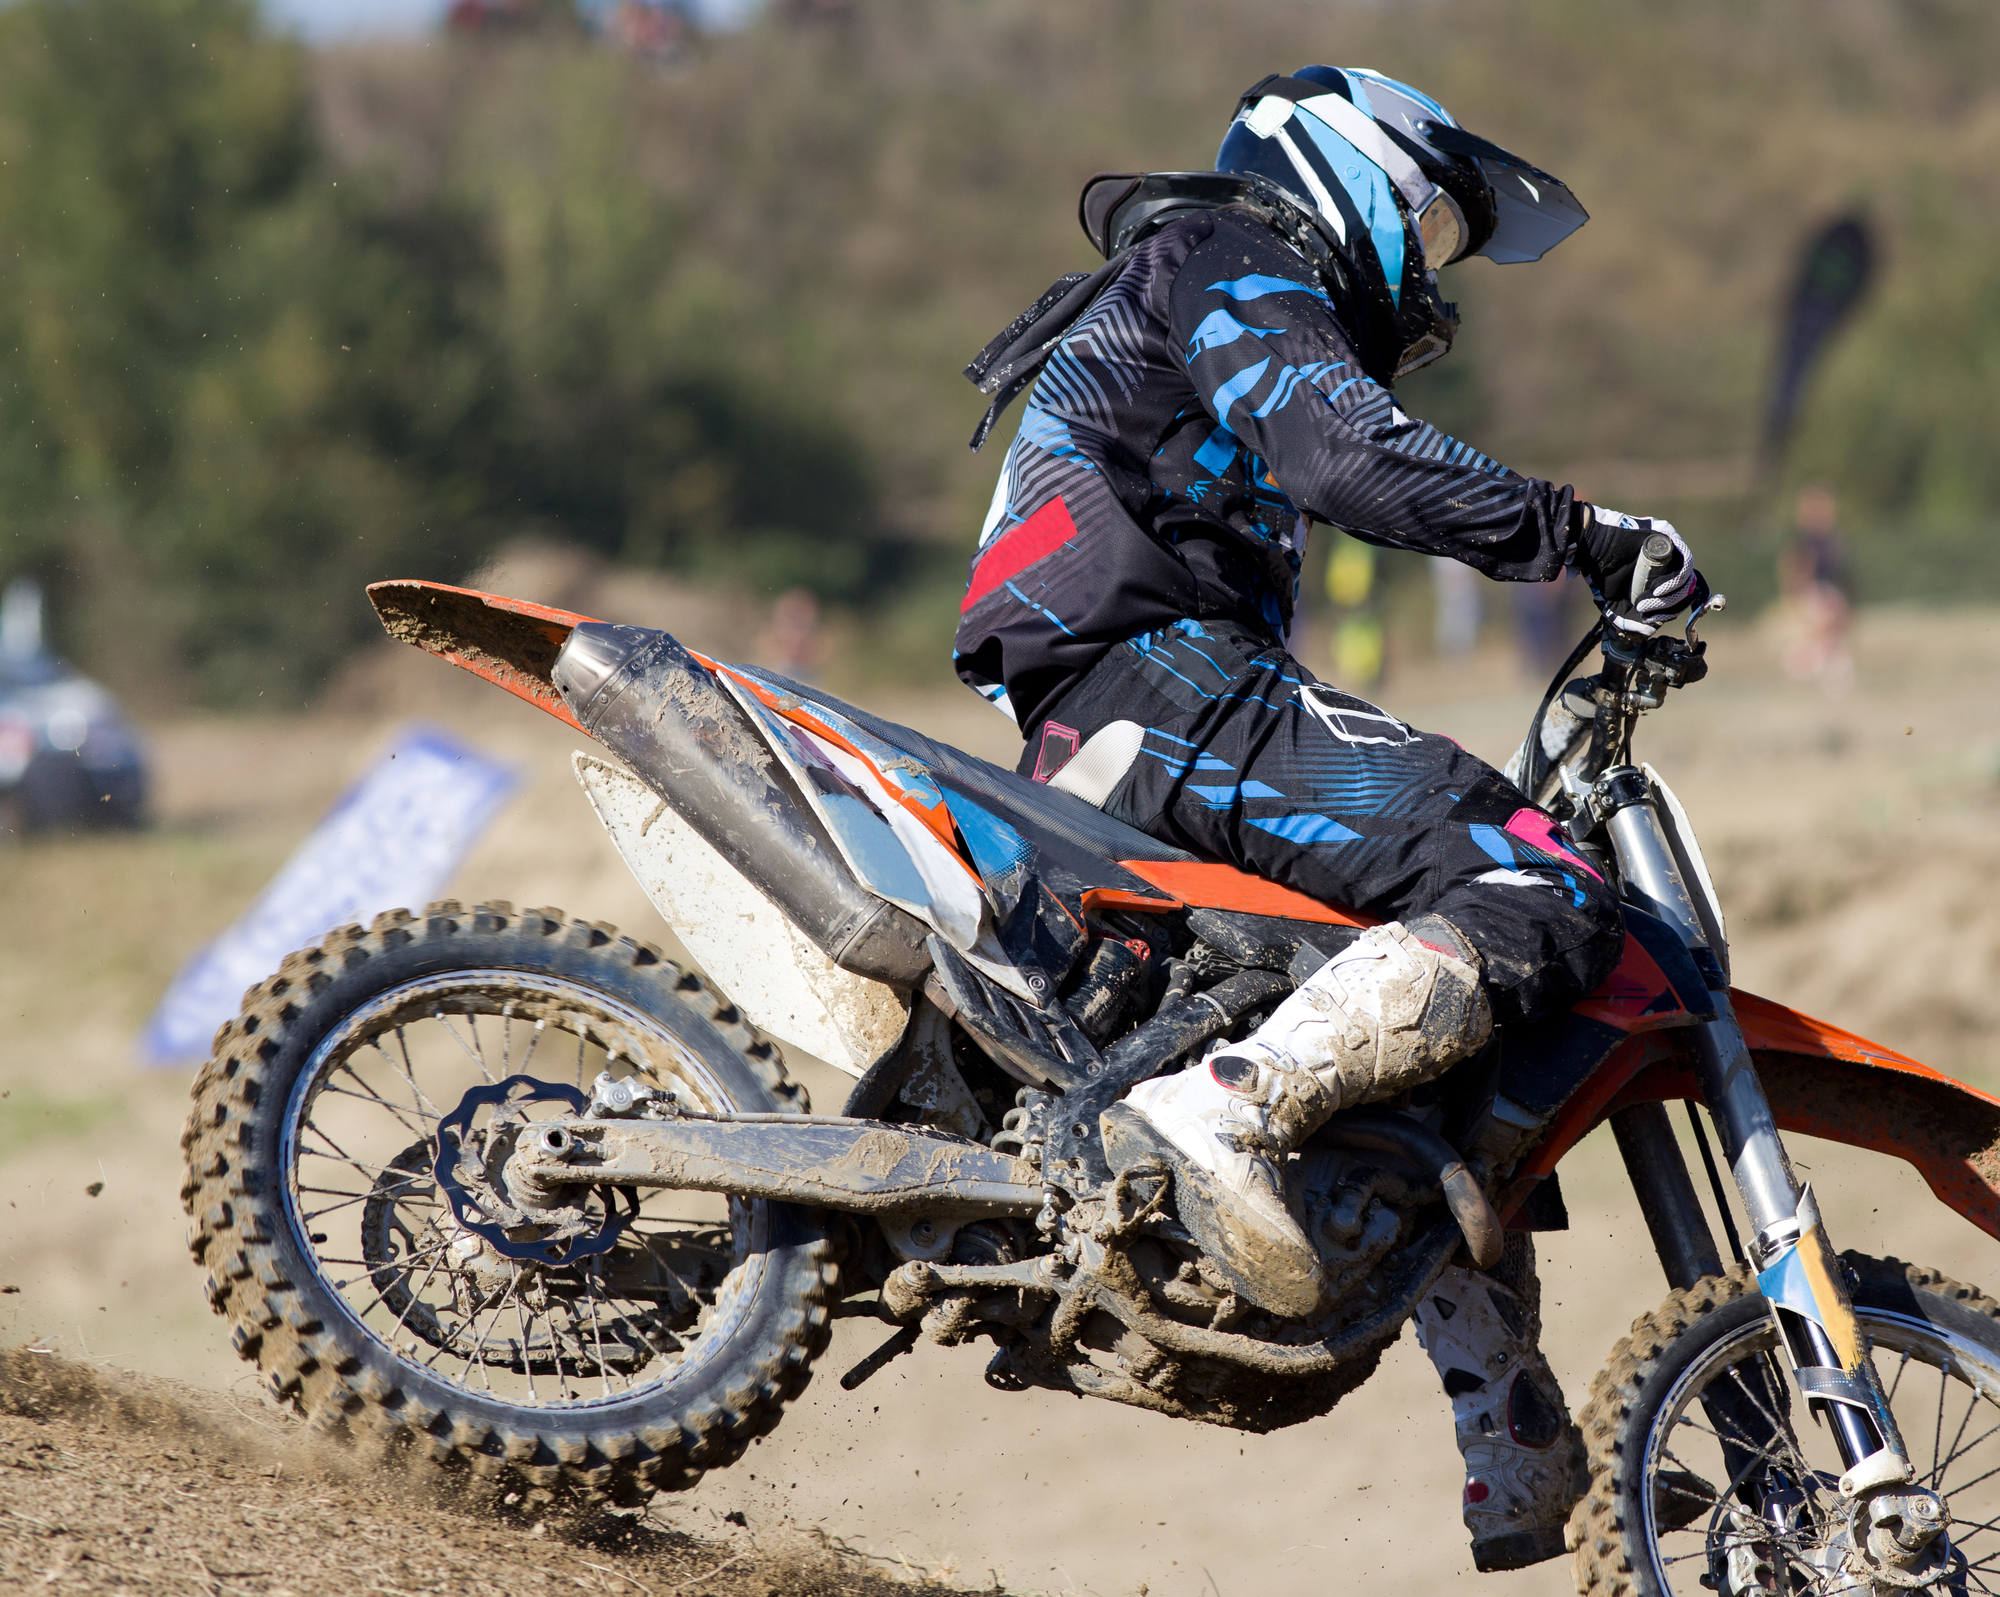 Biker riding motorcycle in mud at off road race